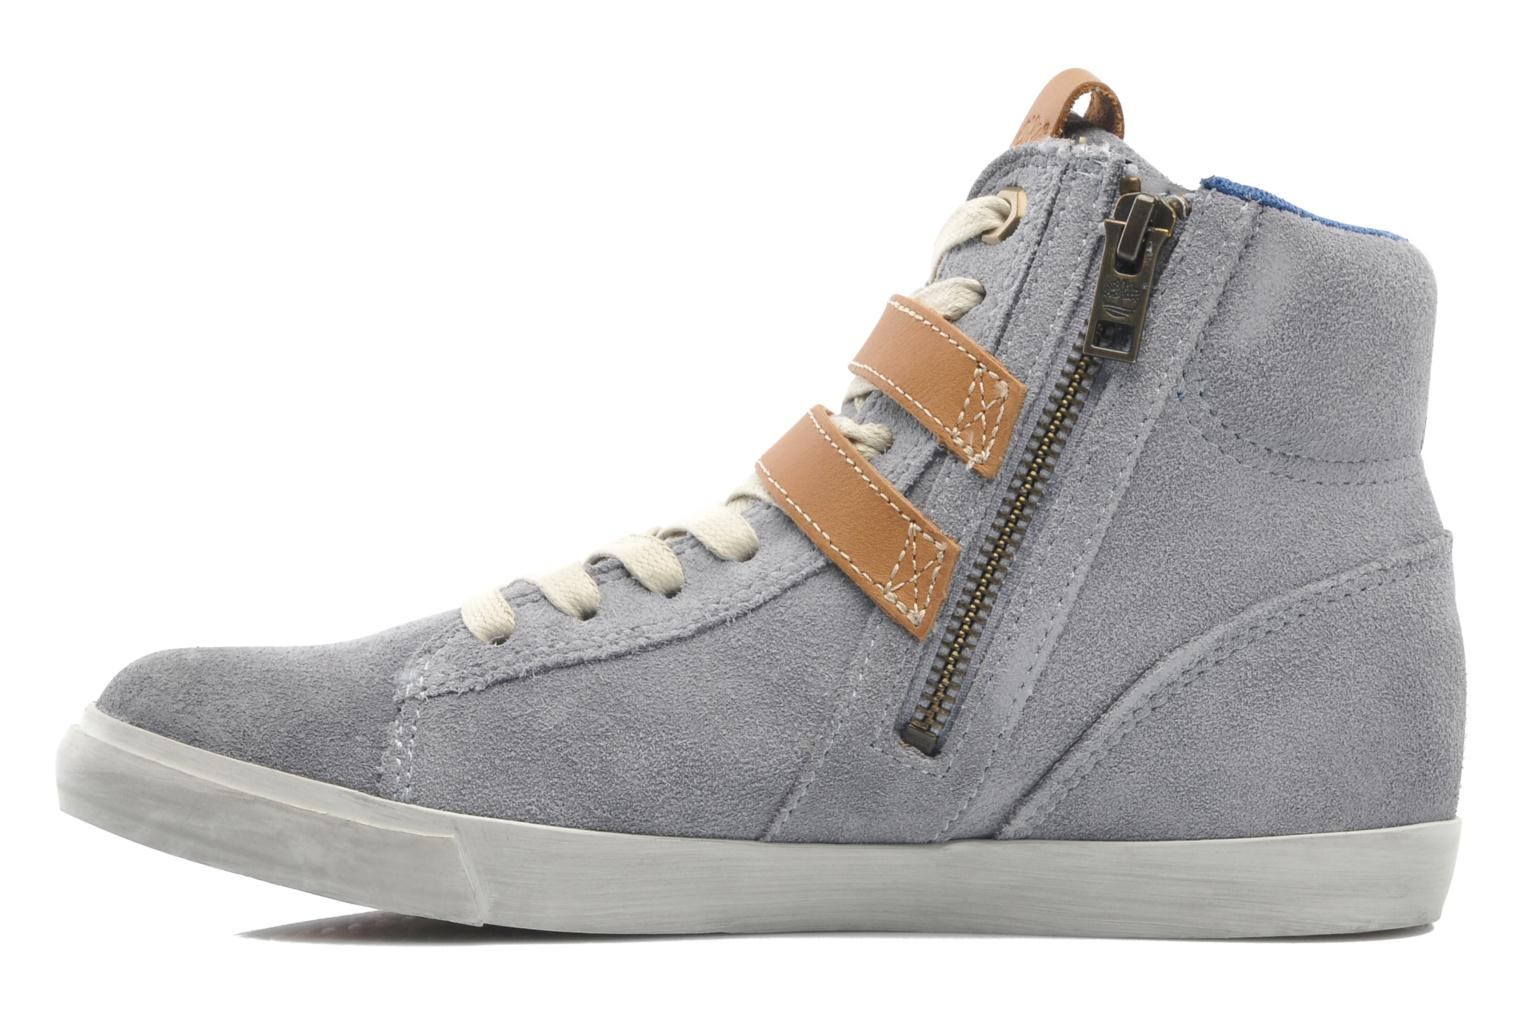 Earthkeepers Glastenbury Sneaker Hi Top Grey suede